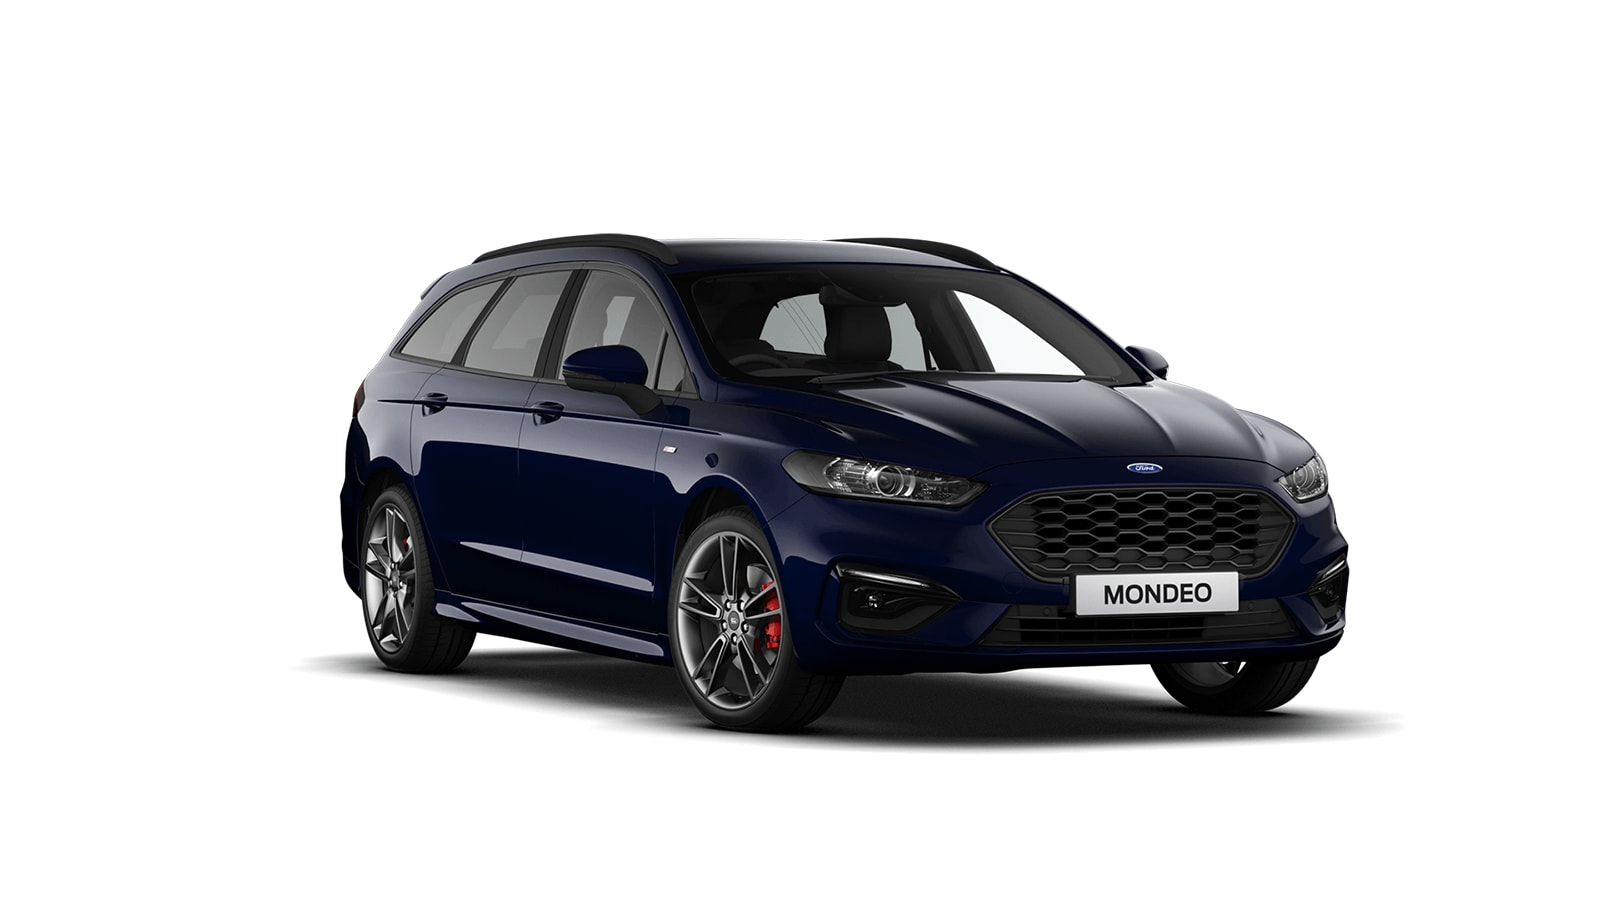 Ford Mondeo at Lamberts Garage